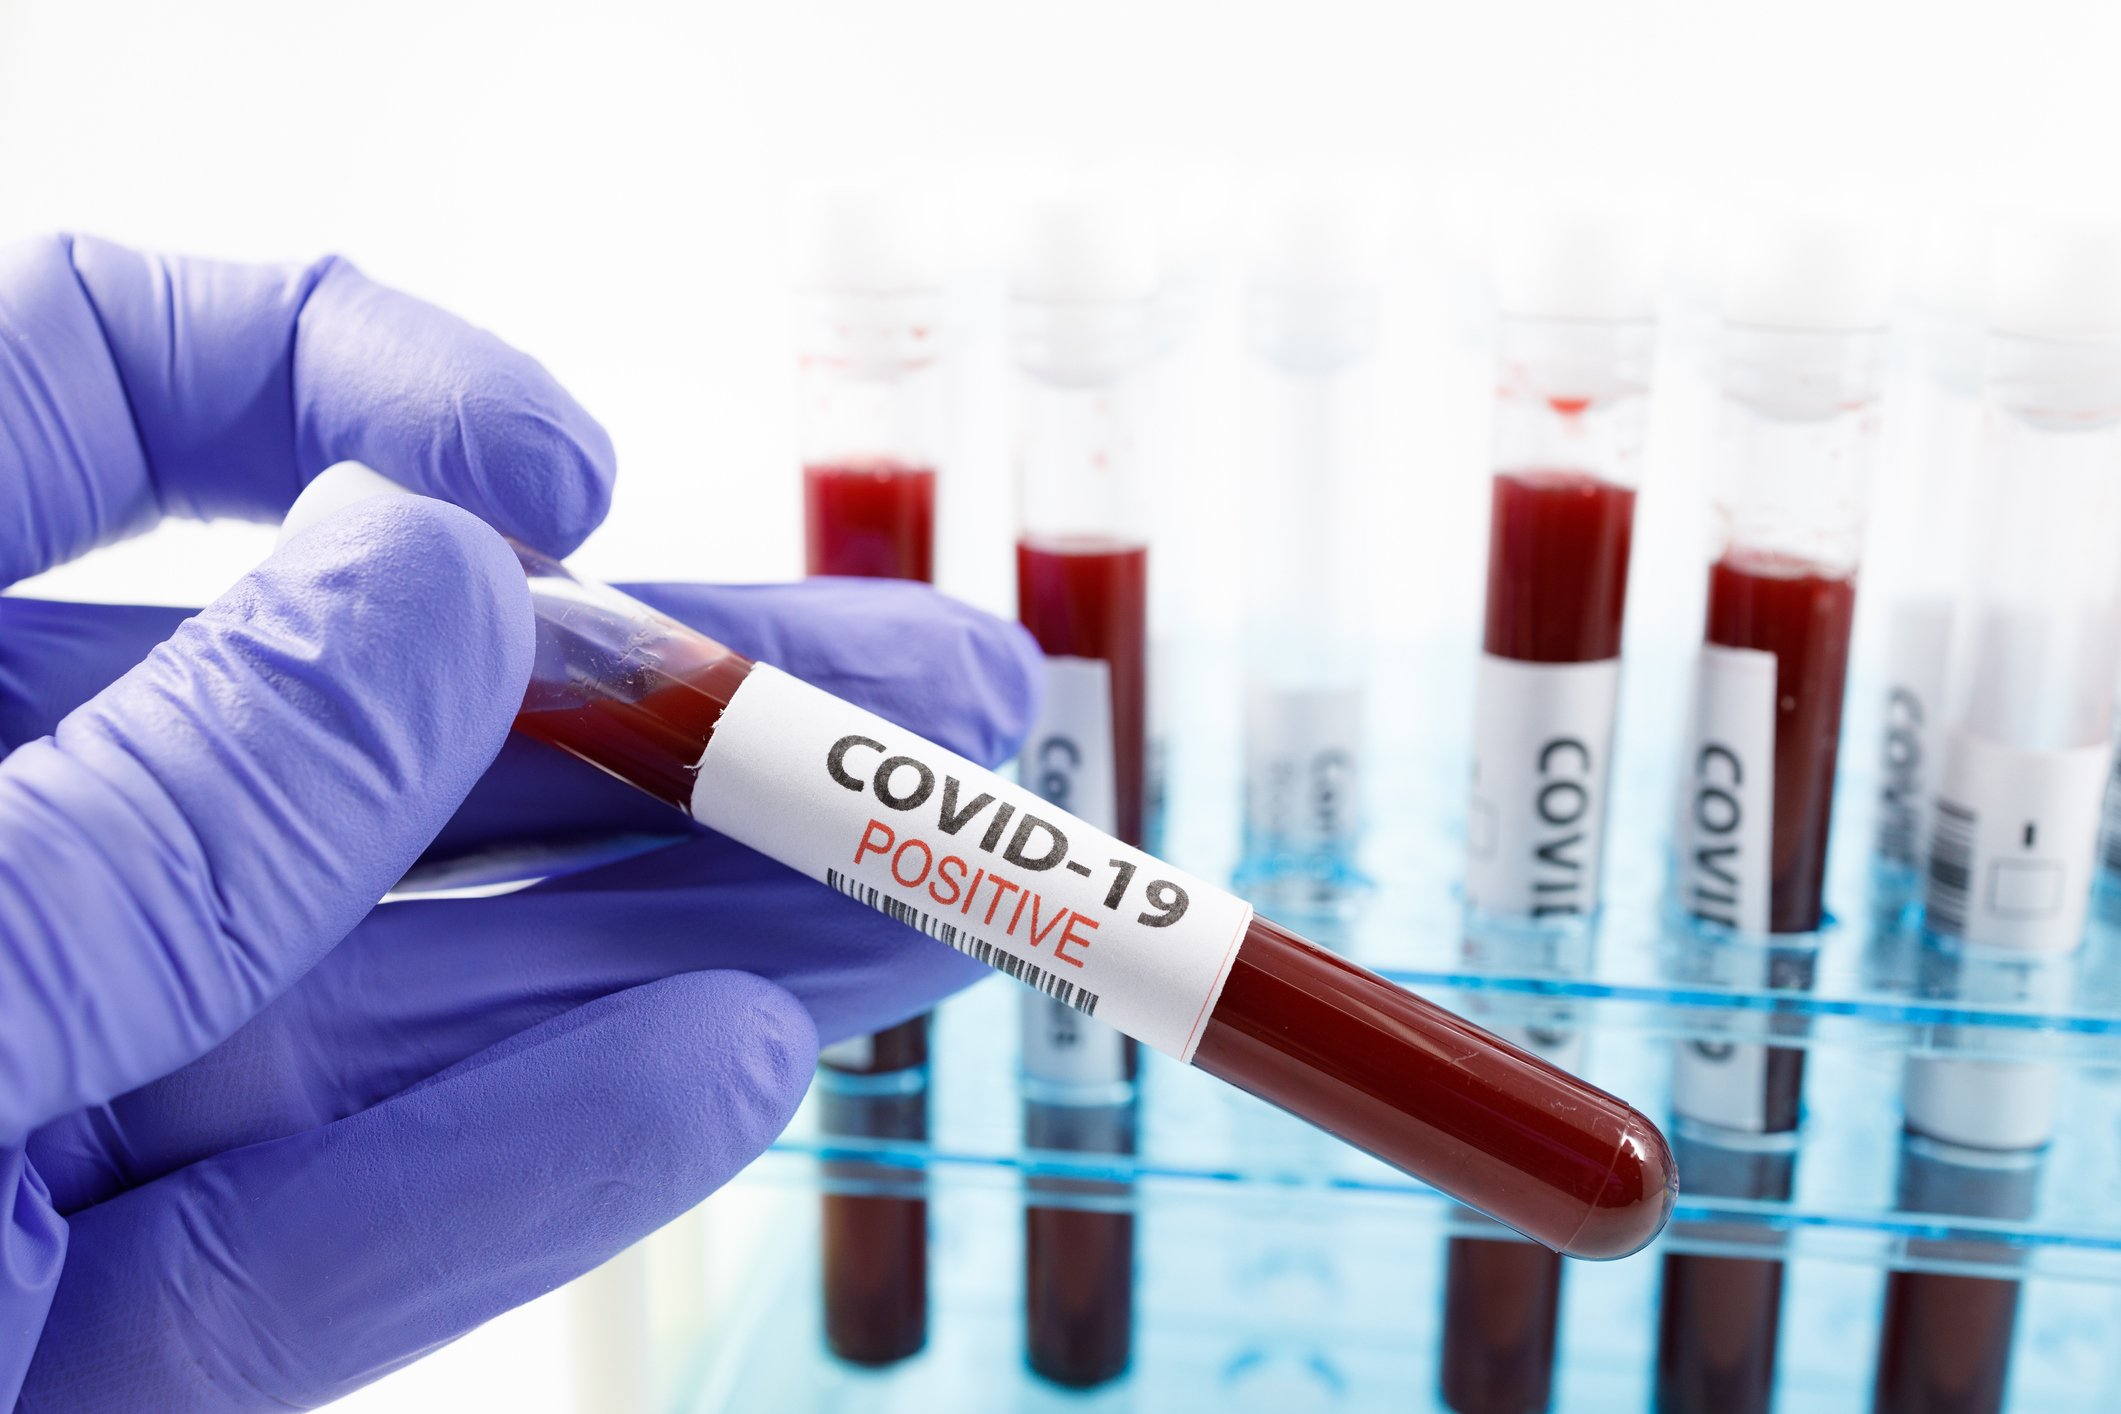 The only antibody currently available for treating COVID-19 is found in the blood plasma of disease survivors.